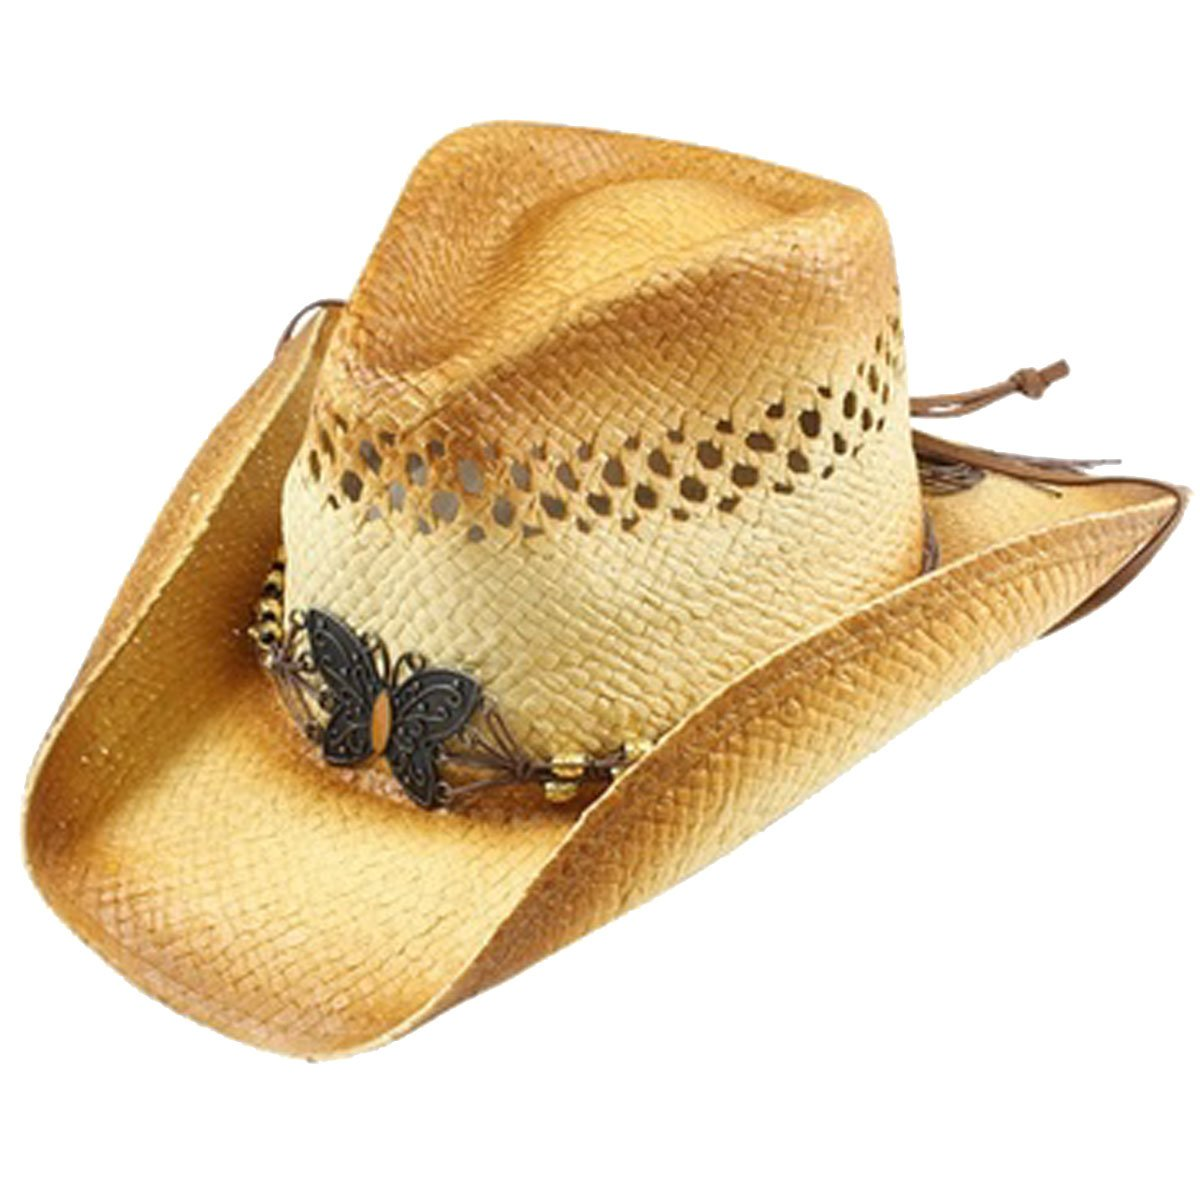 Beaded Butterfly Cowboy Hat - Natural (Natural)